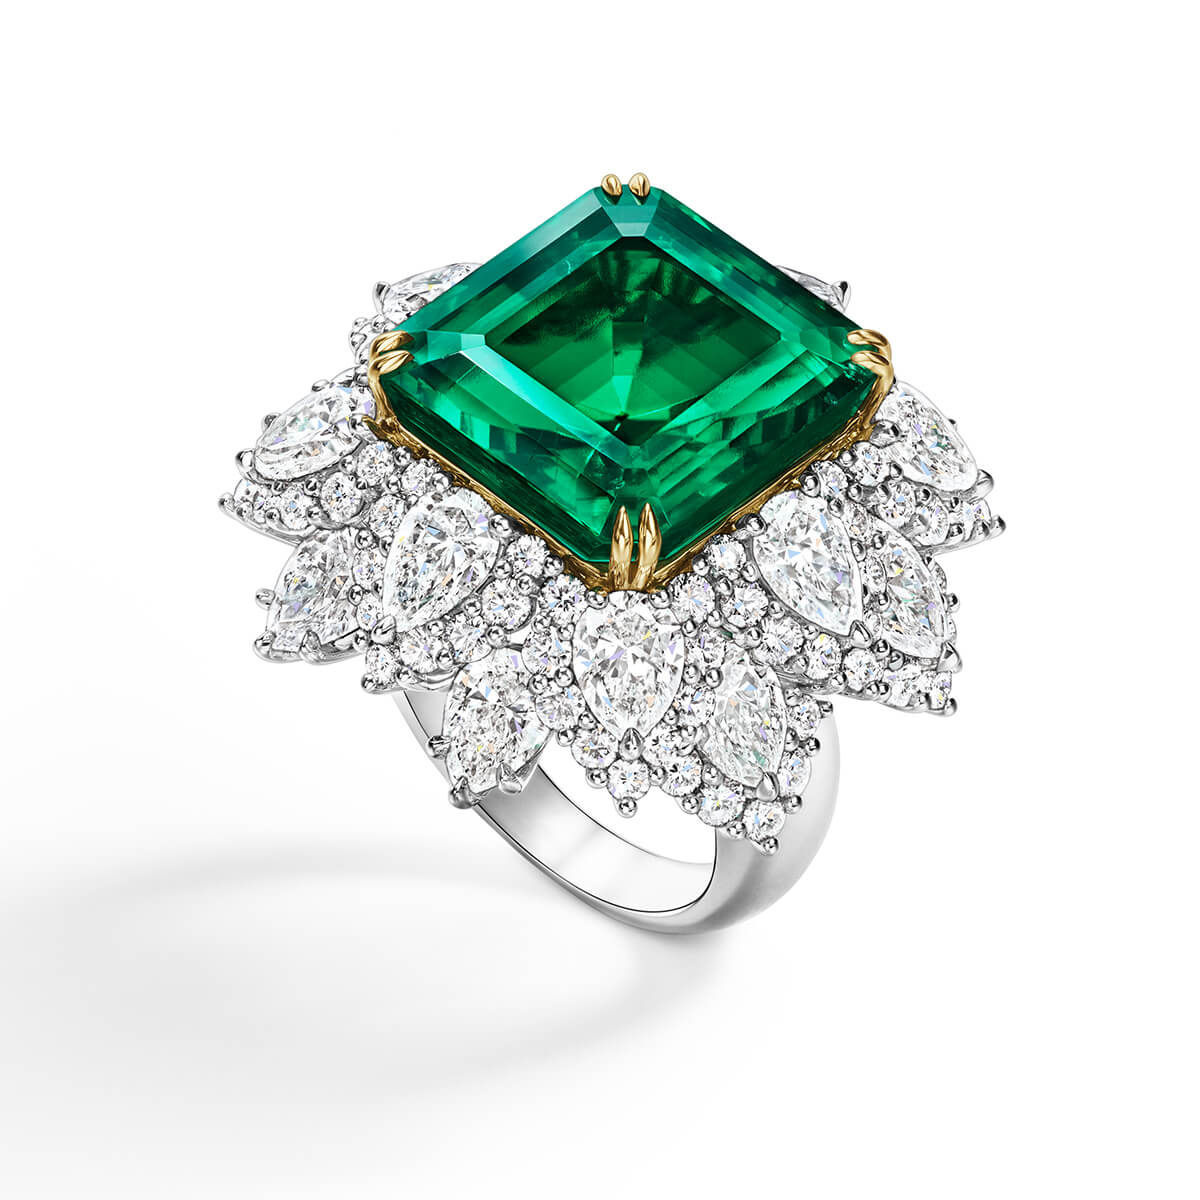 The Rockefeller-Winston ring featuring a square emerald-cut Colombian emerald center stone weighing 18.03 carats with 108 round brilliant and pear-shaped diamonds set in 18 karat yellow gold and platinum